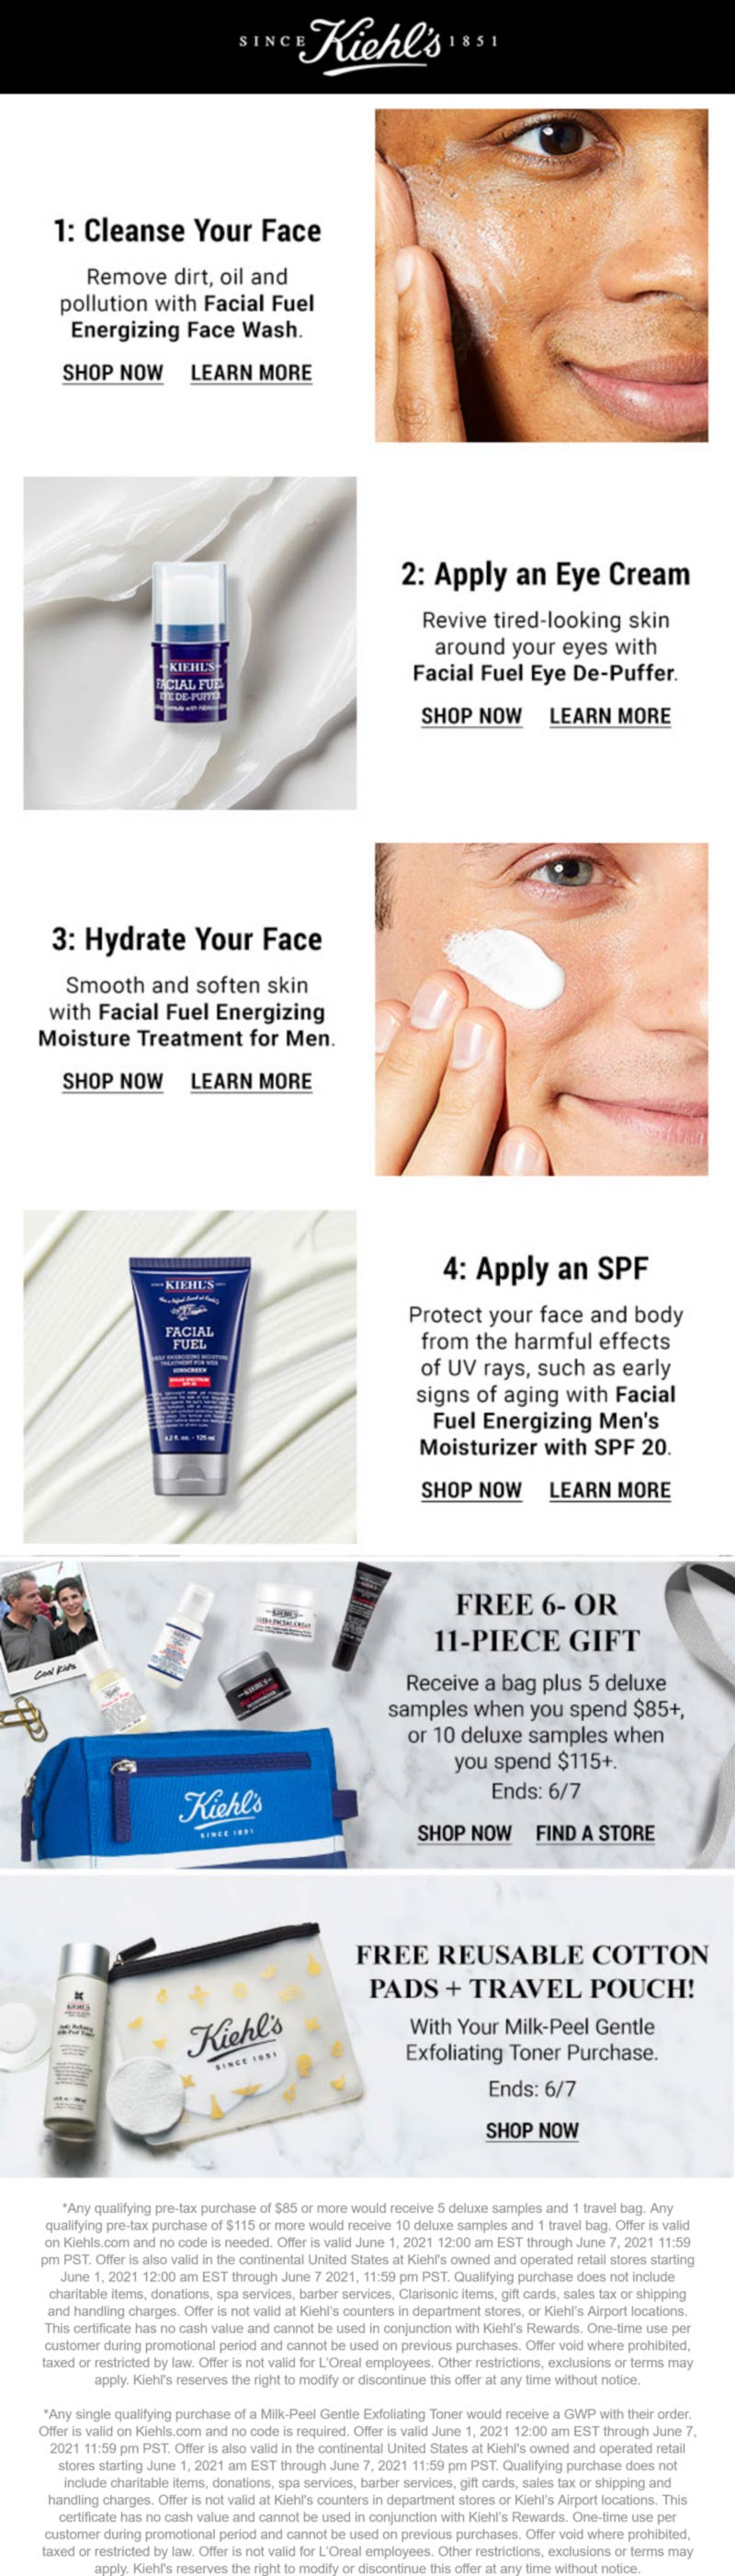 Kiehls stores Coupon  5pc free on $85 or 10pc free on $115 online at Kiehls #kiehls